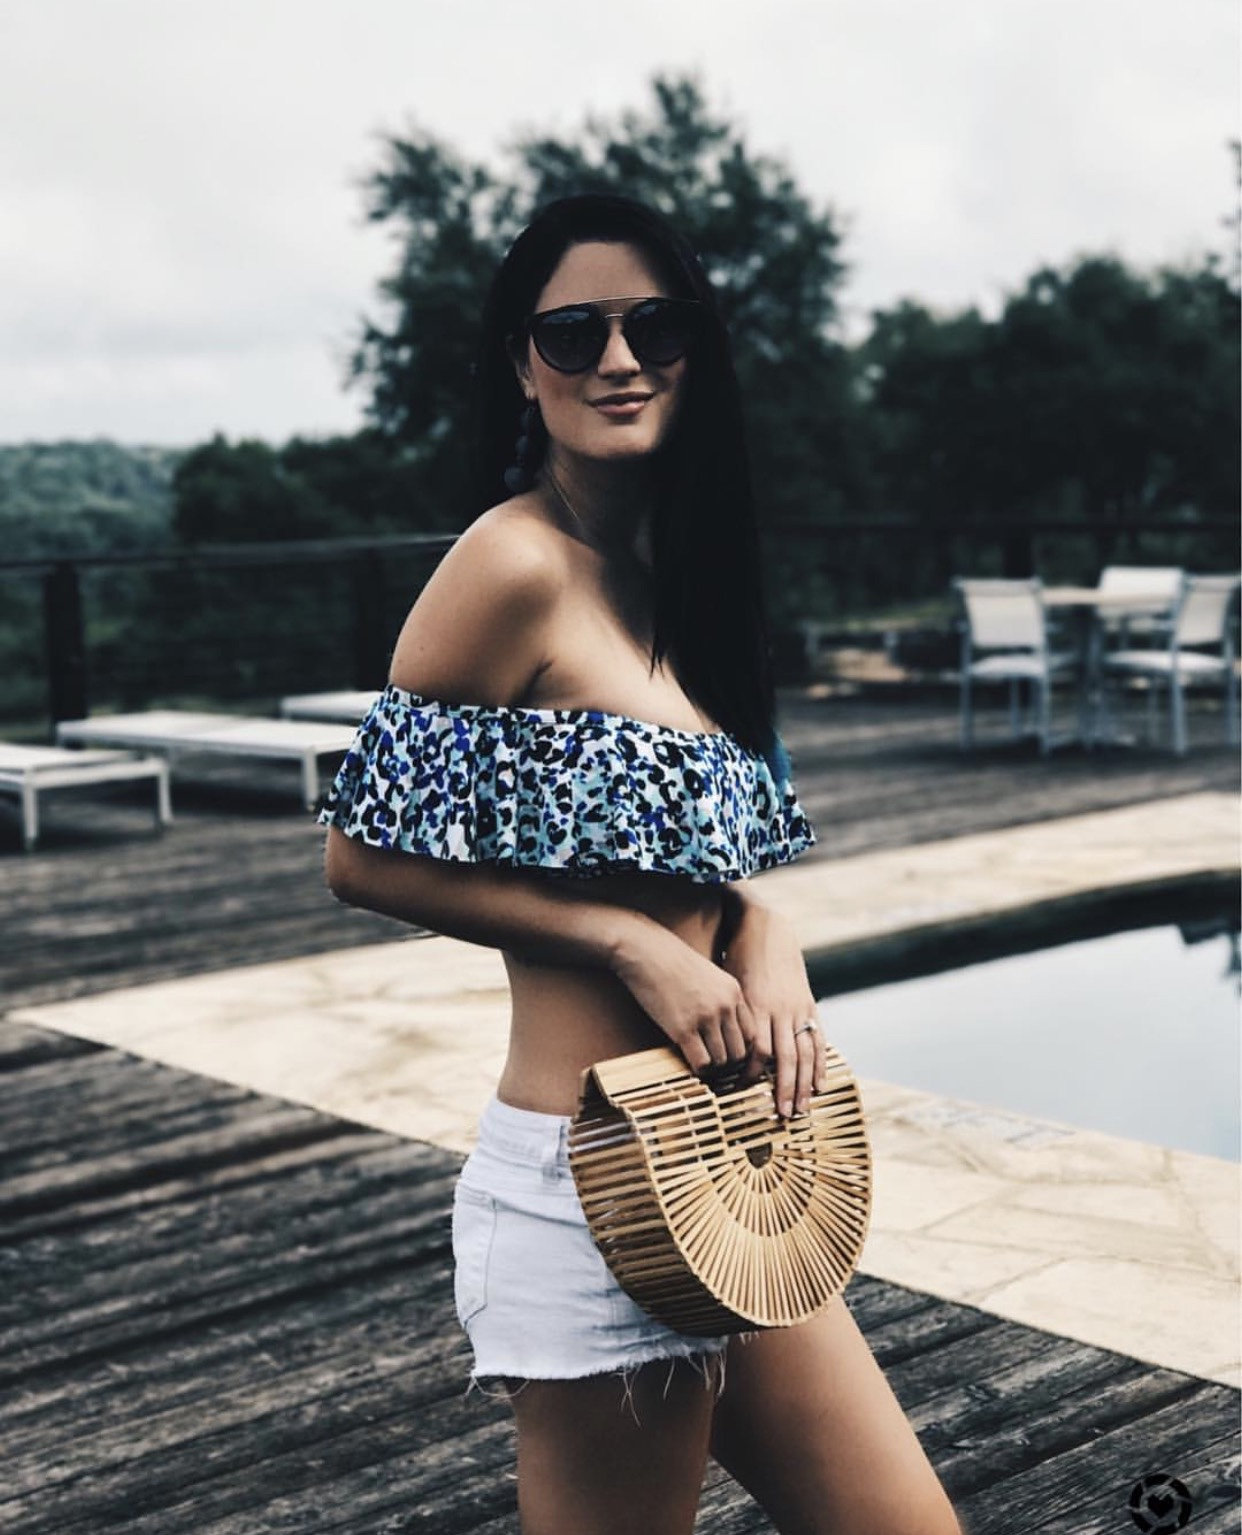 Instagram Outfit Roundup - Favorite July Looks | summer fashion tips | summer outfit ideas | summer style tips | what to wear for summer | warm weather fashion | fashion for summer | style tips for summer | outfit ideas for summer || Dressed to Kill